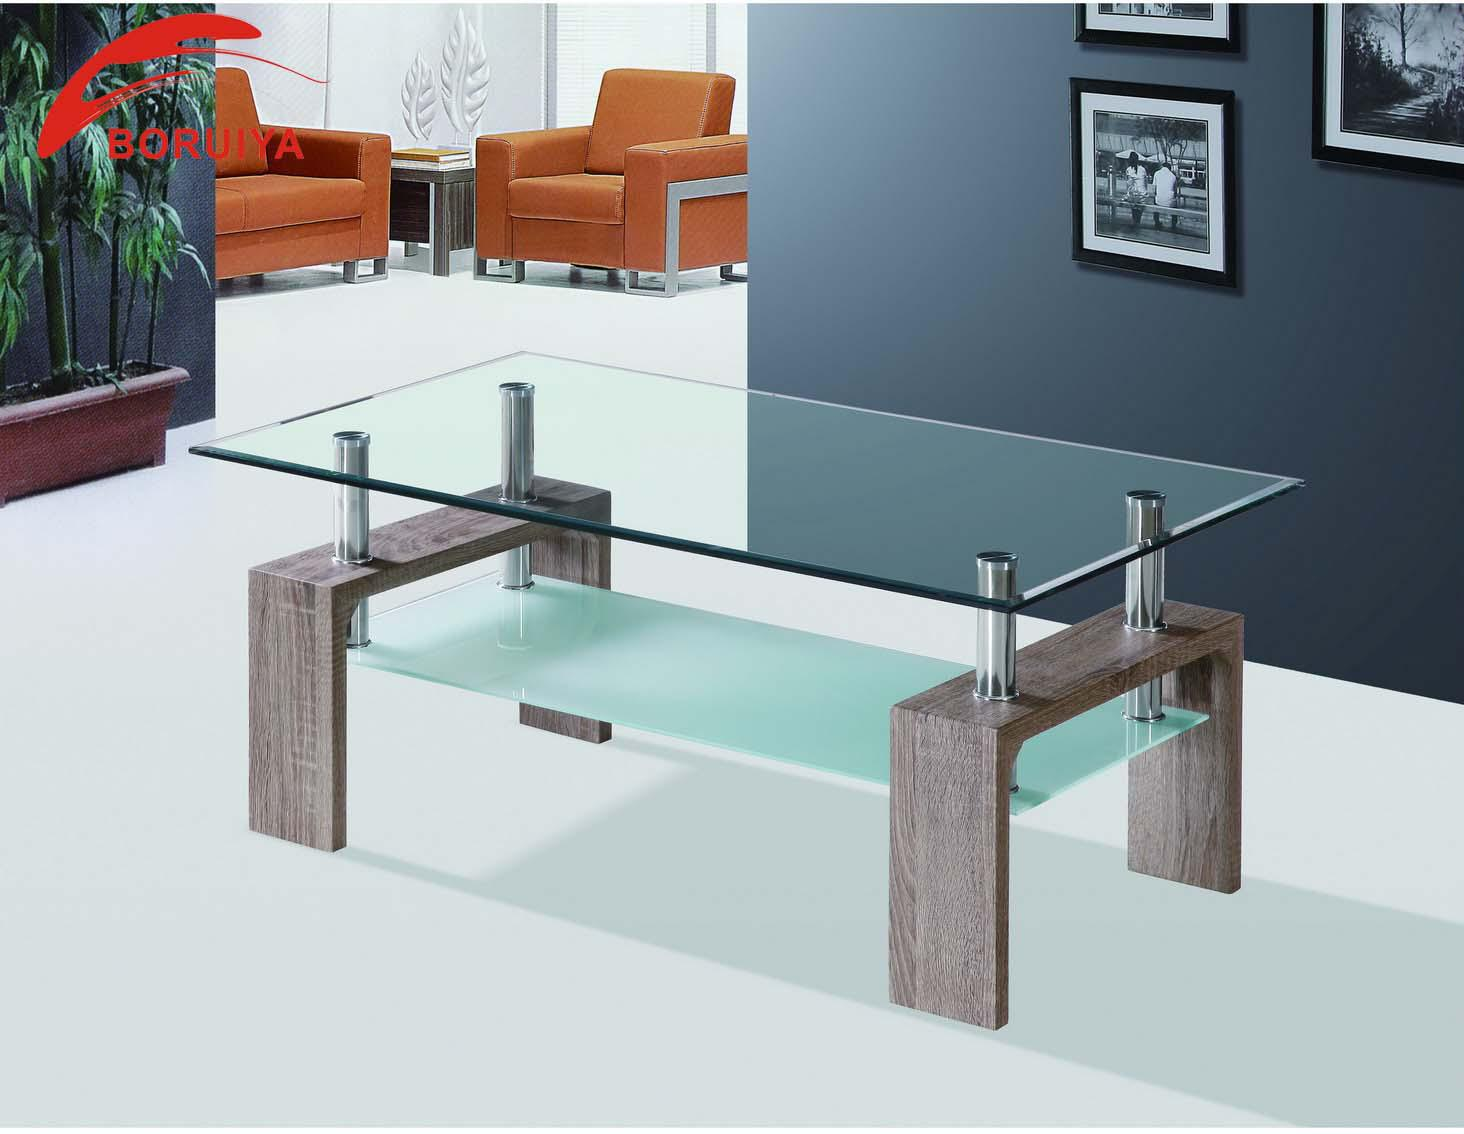 Living room furniture center table design coffee table for Center table coffee table